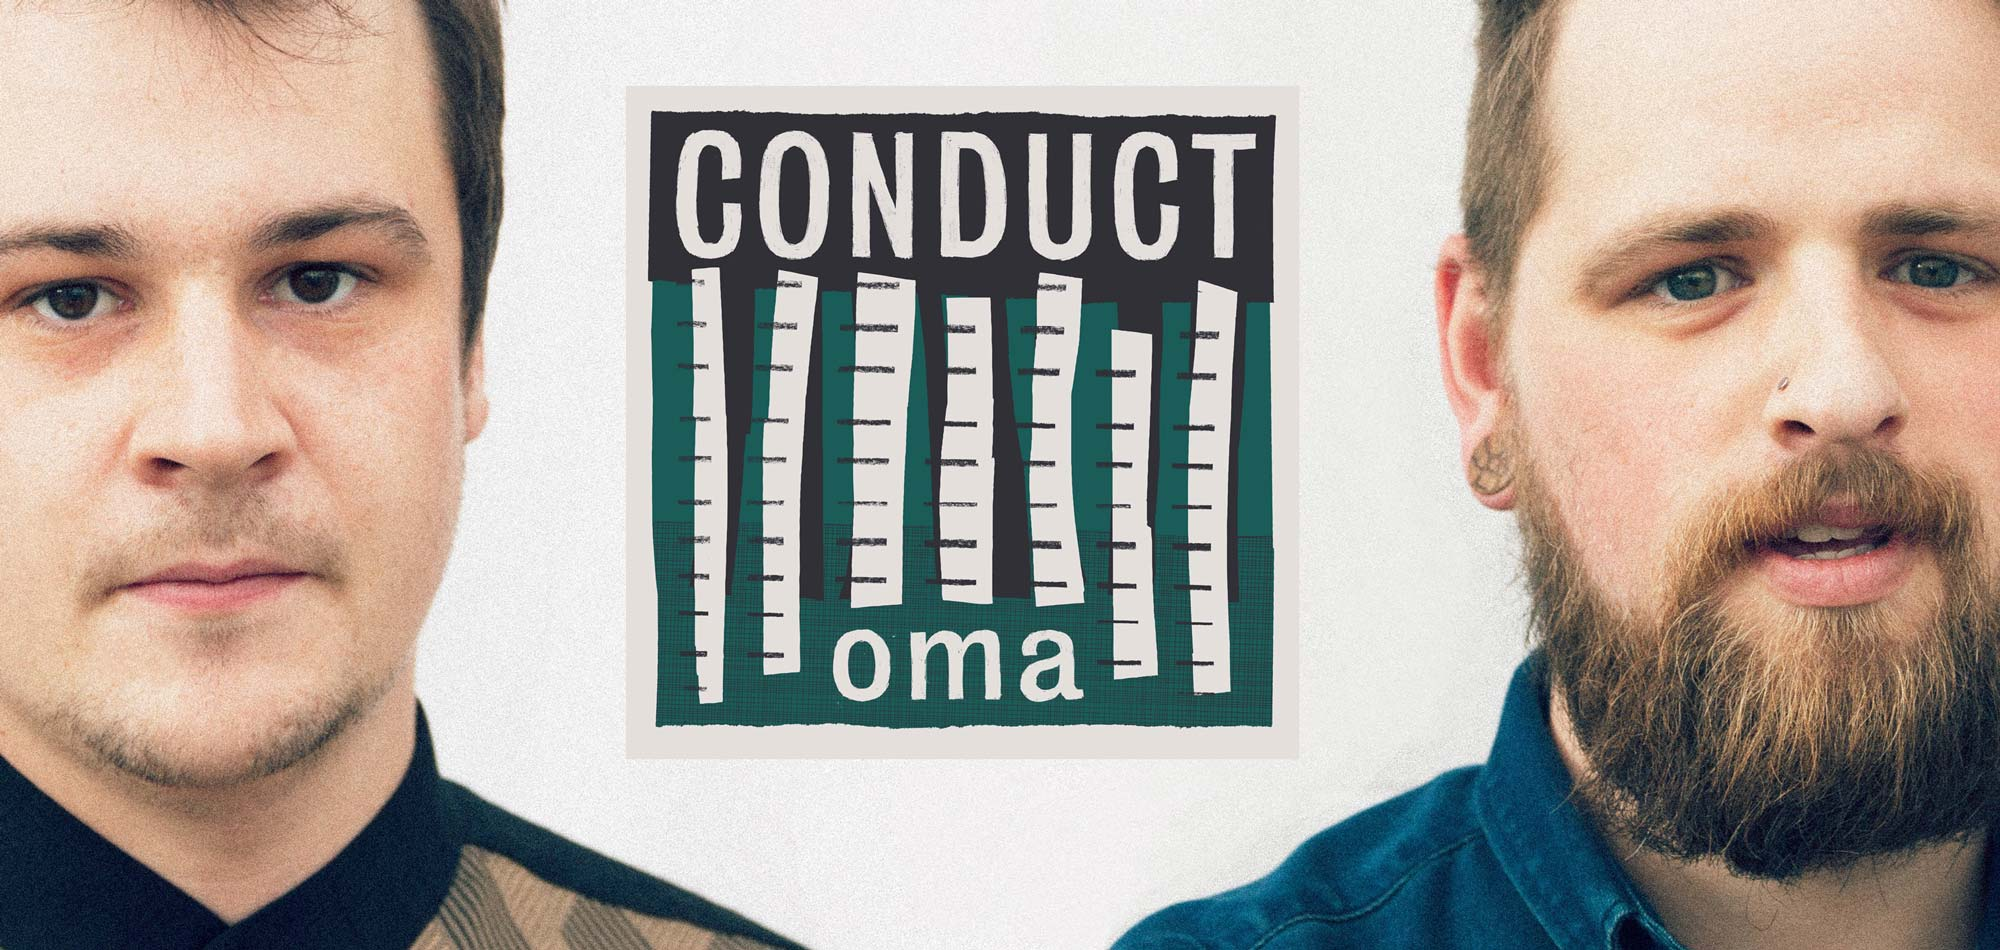 Conduct – Oma • Drehorgel 0010